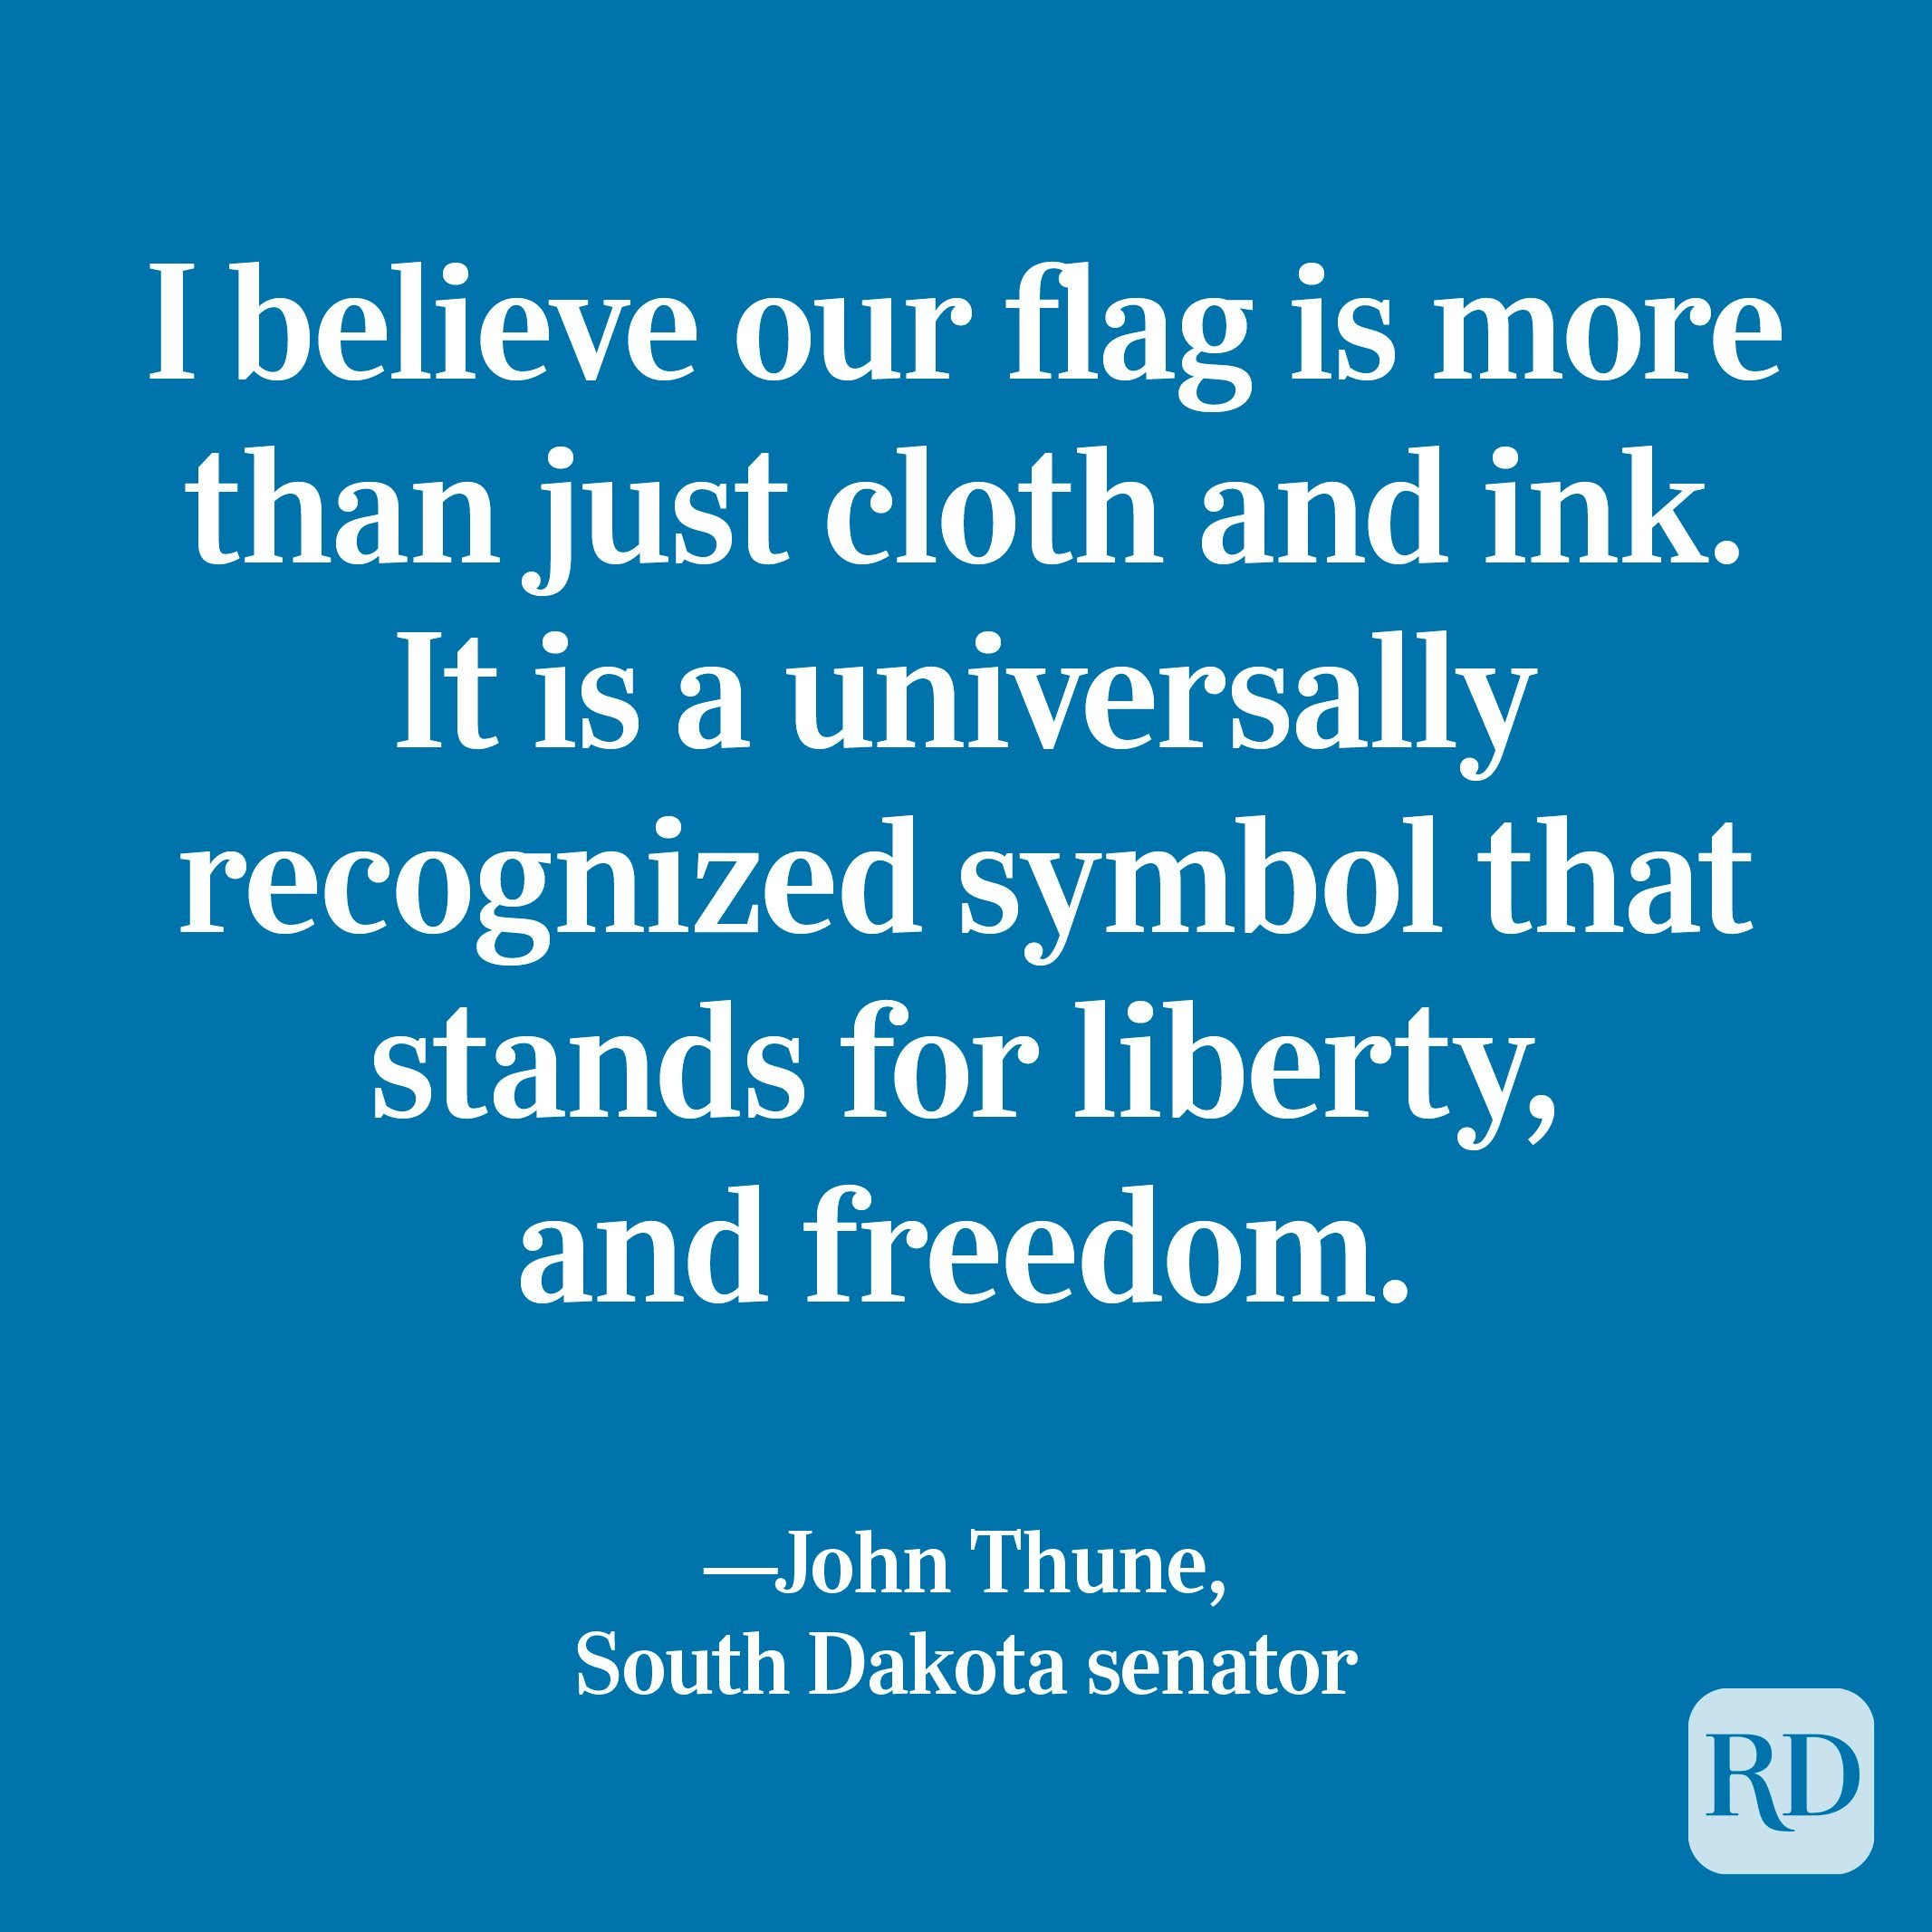 """""""I believe our flag is more than just cloth and ink. It is a universally recognized symbol that stands for liberty, and freedom. It is the history of our nation, and it's marked by the blood of those who died defending it."""" —John Thune, South Dakota senator"""